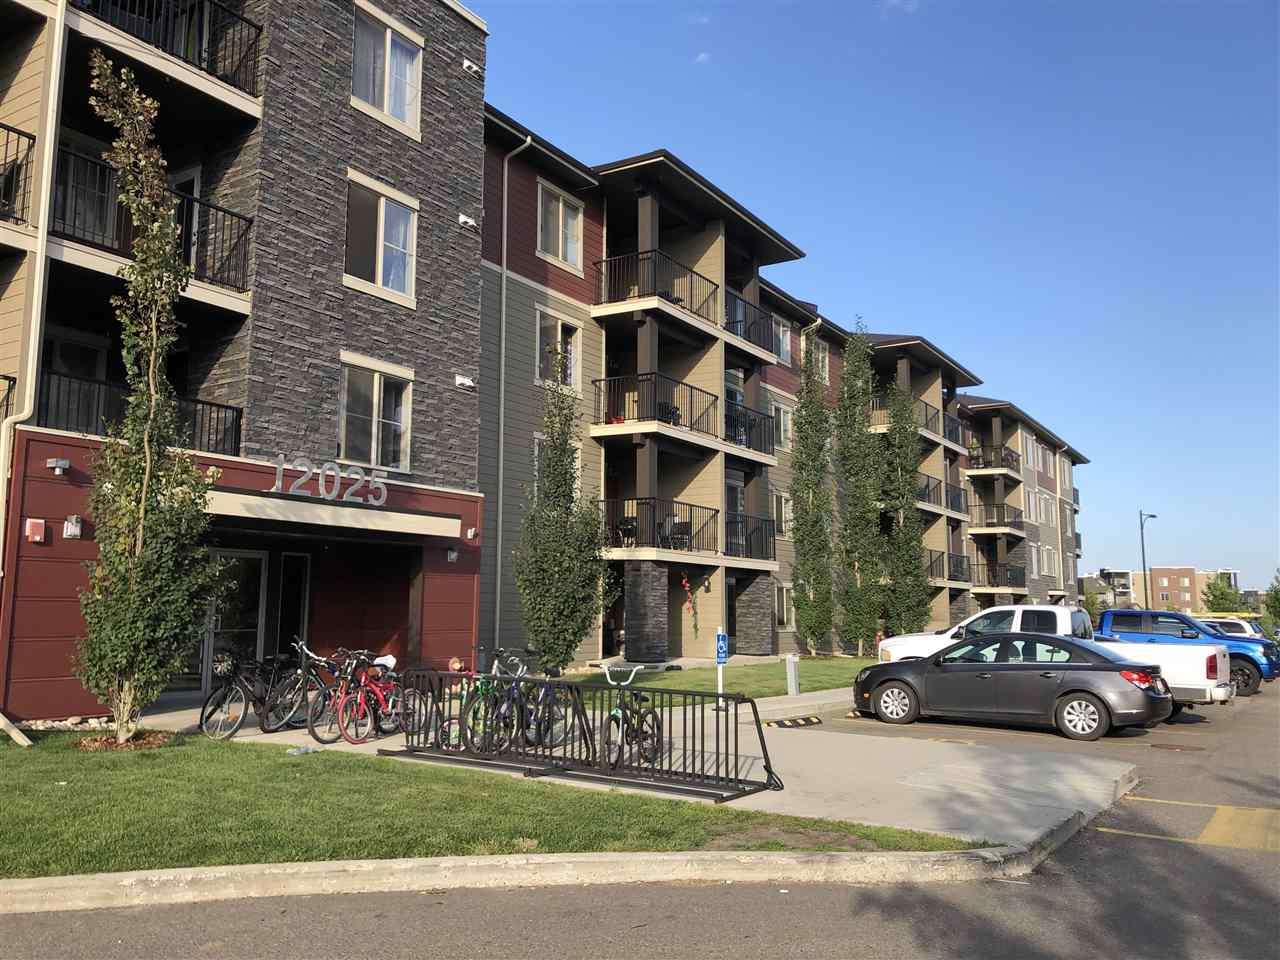 MLS® listing #E4169159 for sale located at 119 12025 22 Avenue